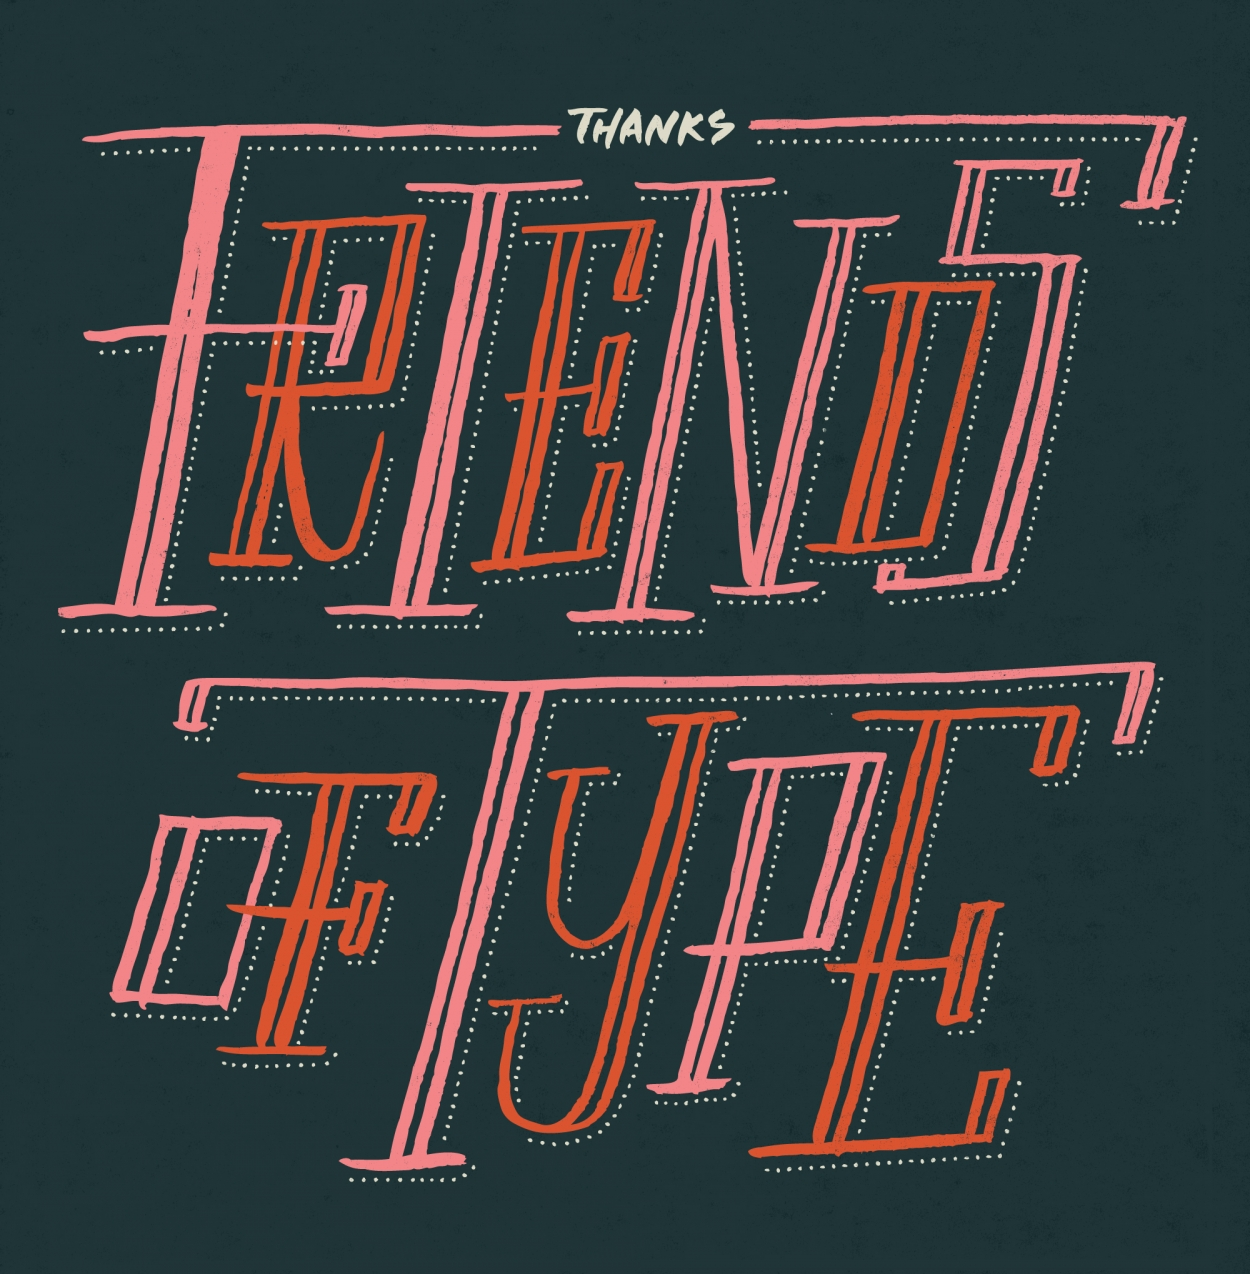 Brent Couchman - Friends of Type Guest Post'r - Thanks